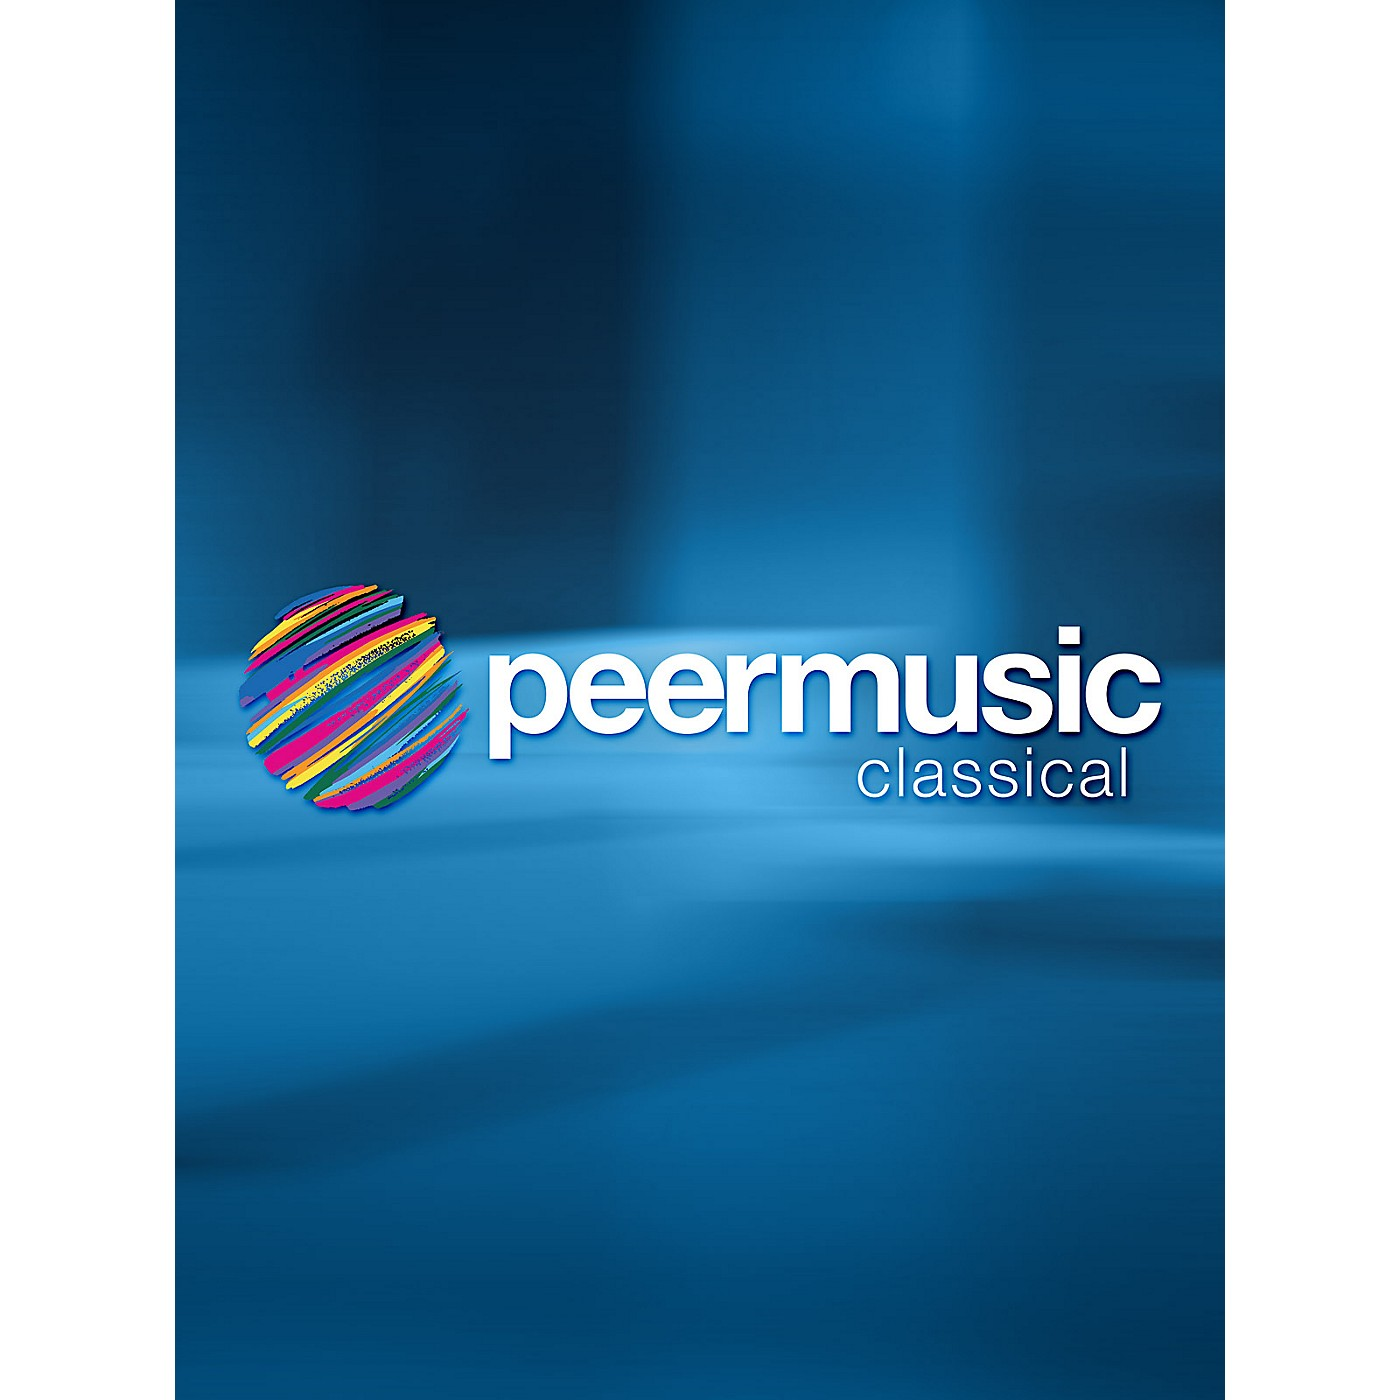 Peer Music Trio (Violin, Viola and Cello, Parts) Peermusic Classical Series Softcover Composed by Otte thumbnail